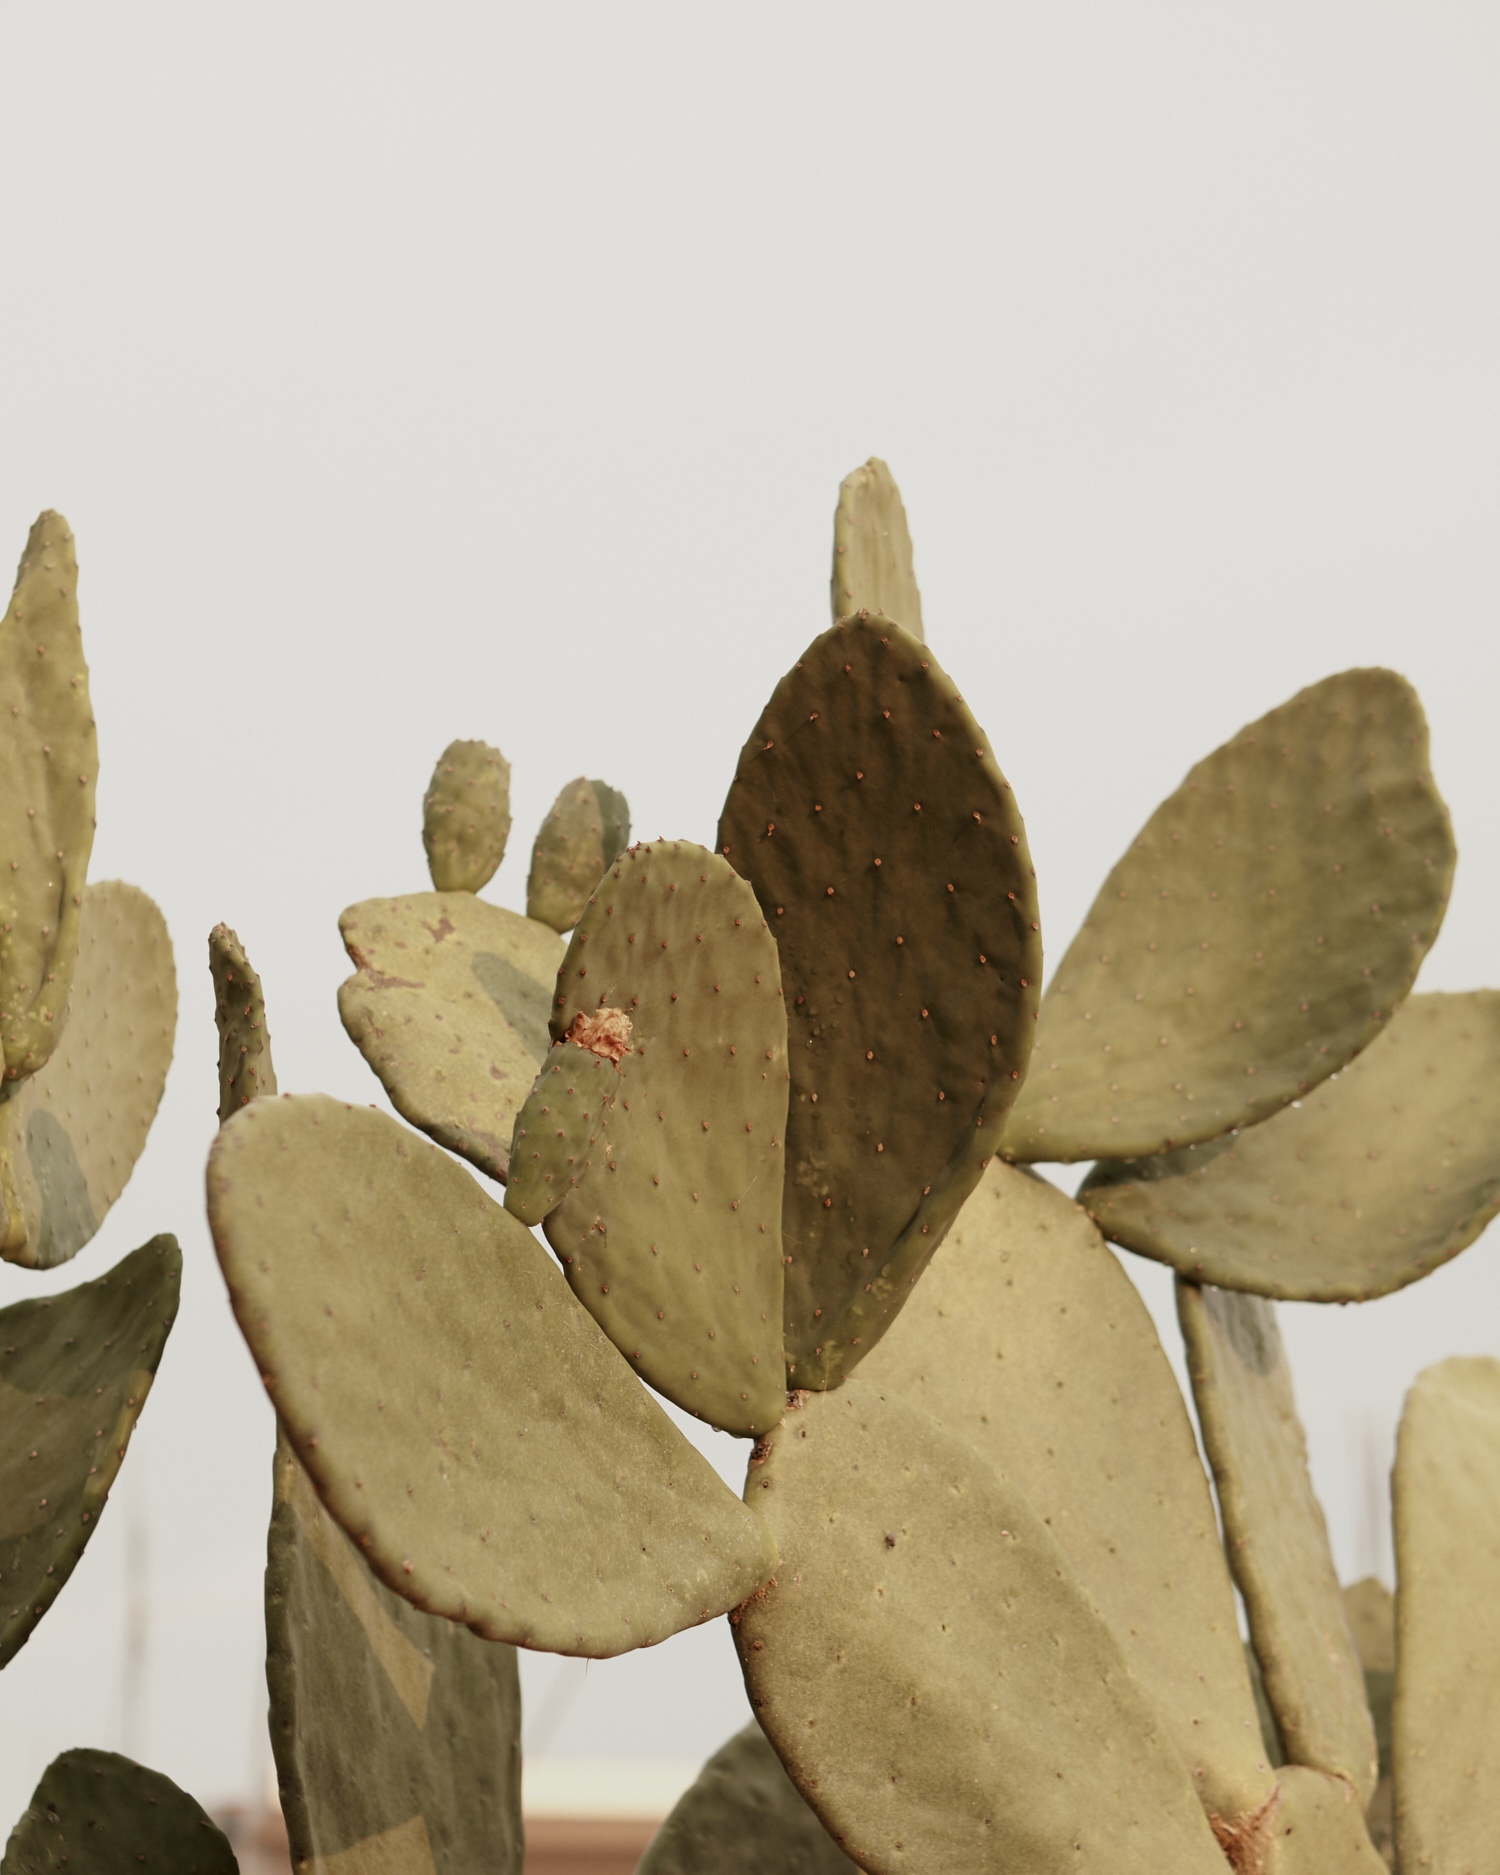 Nopal, 'Prickly Pear', is home to cochineal insects that feed off the juices of the cacti plant. The Benizaa people and cochineal have had a working relationship since the fifteenth century